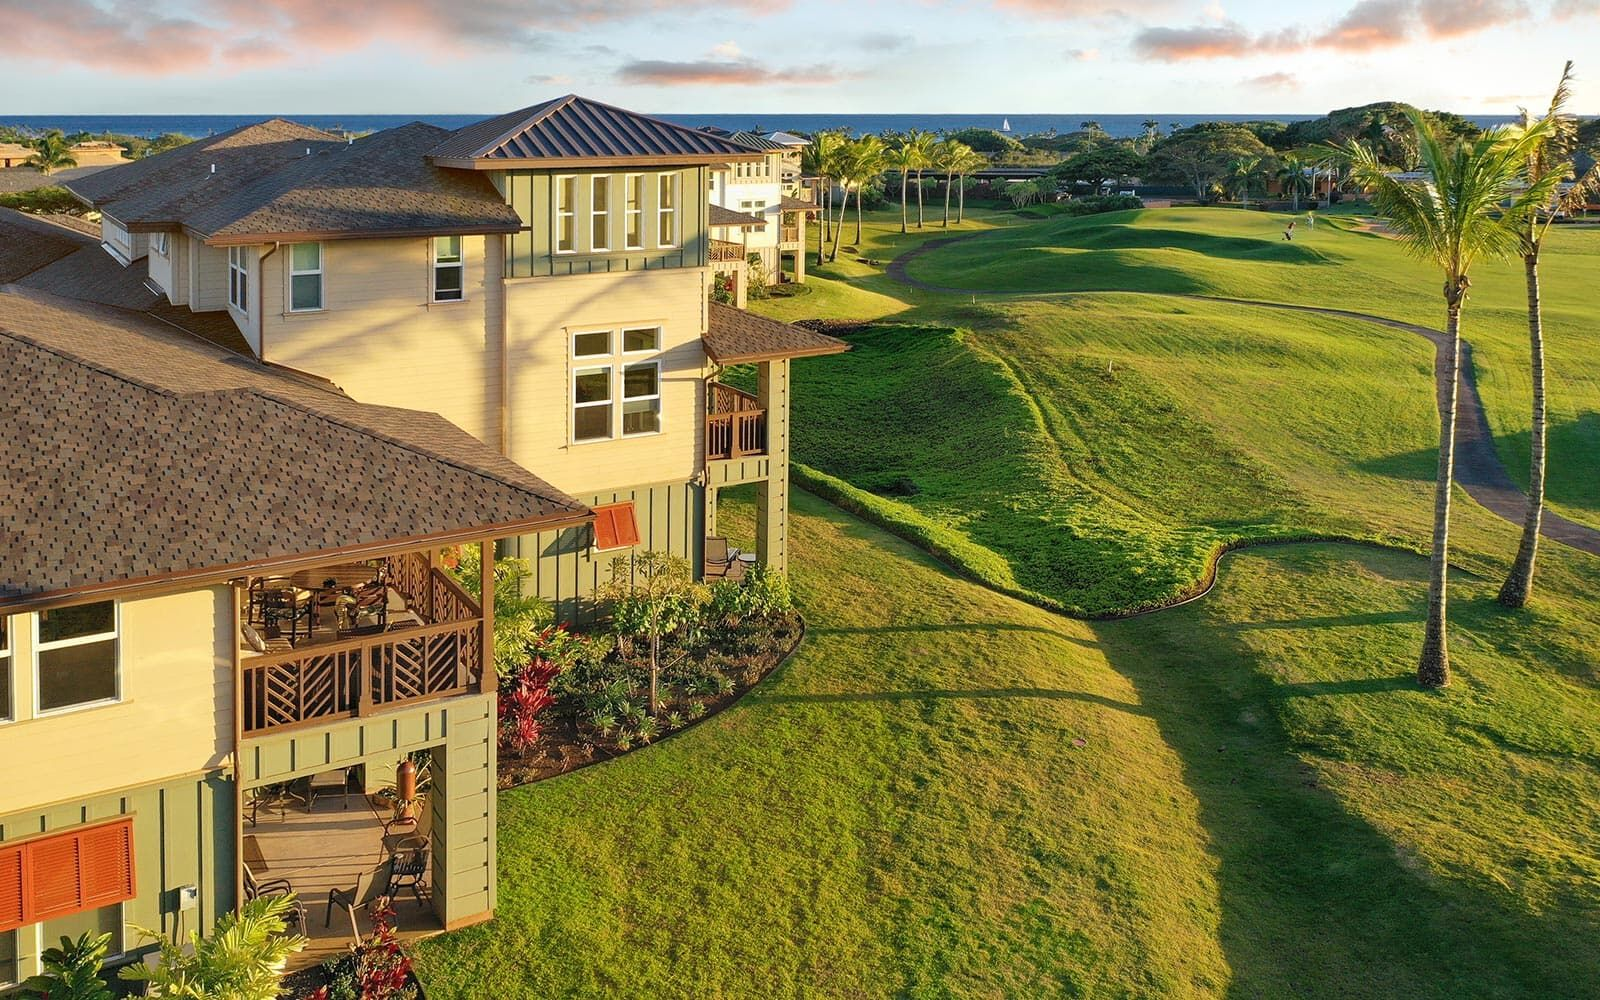 多户 为 销售 在 Makani Plan 1 2611 Kiahuna Plantation Drive Lot 6-A Koloa, Hawaii 96756 United States